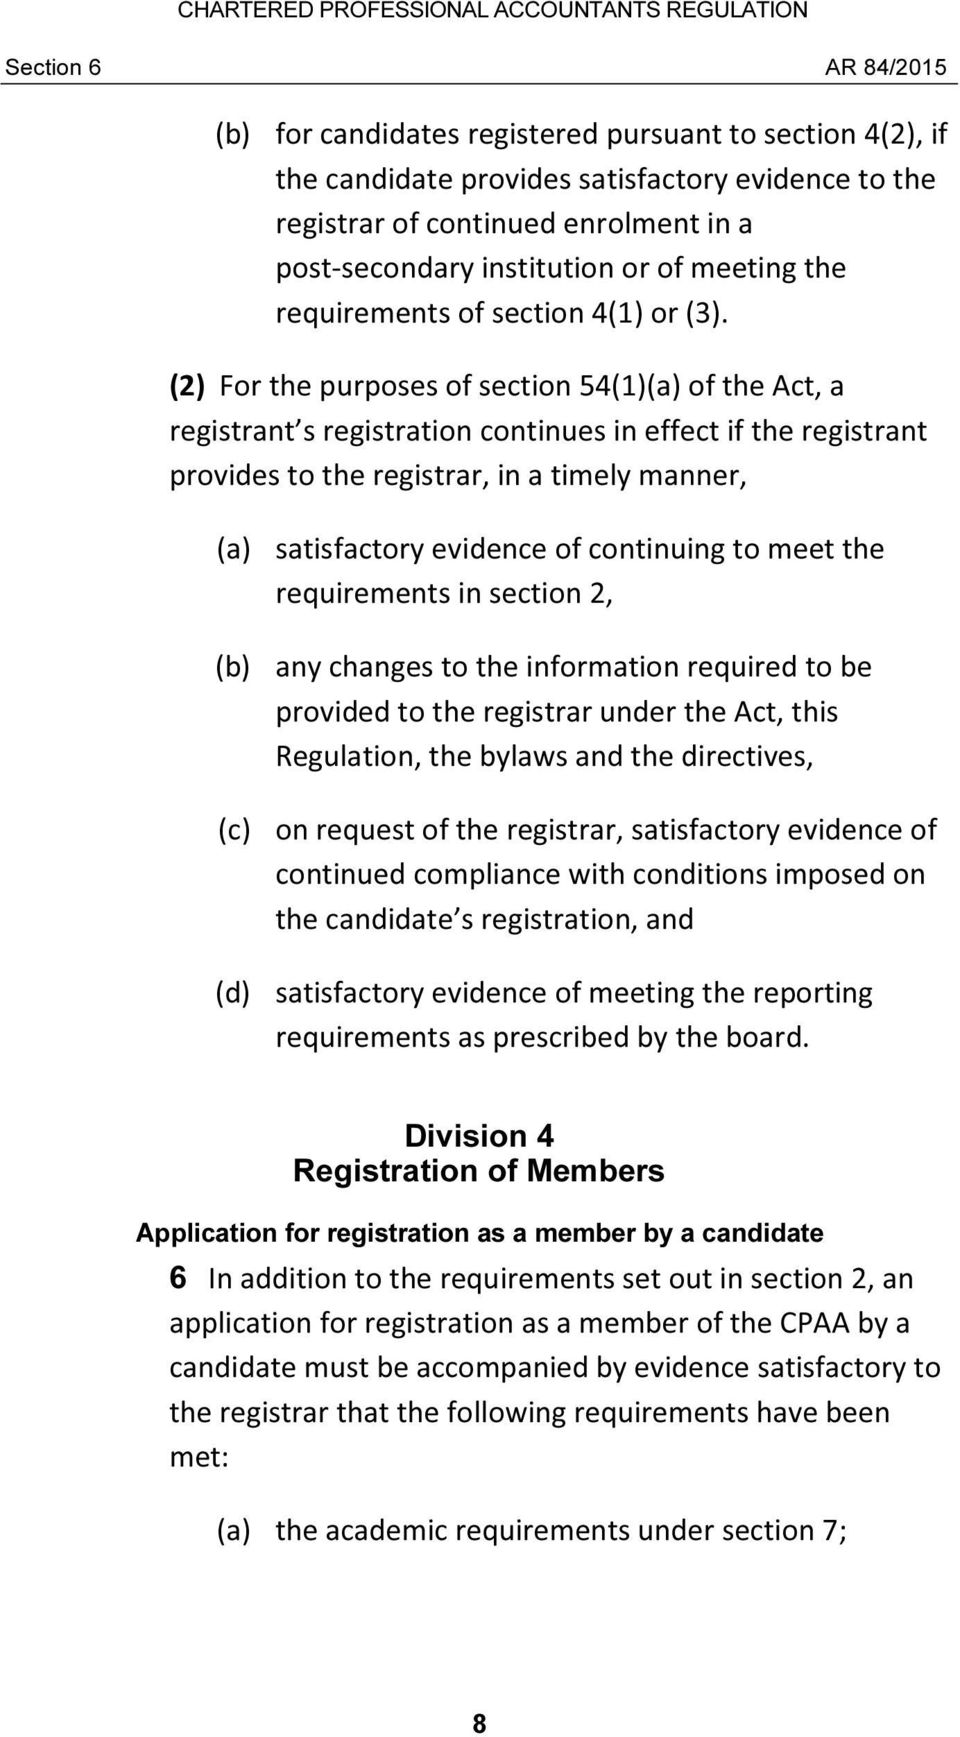 (2) For the purposes of section 54(1)(a) of the Act, a registrant s registration continues in effect if the registrant provides to the registrar, in a timely manner, (a) satisfactory evidence of